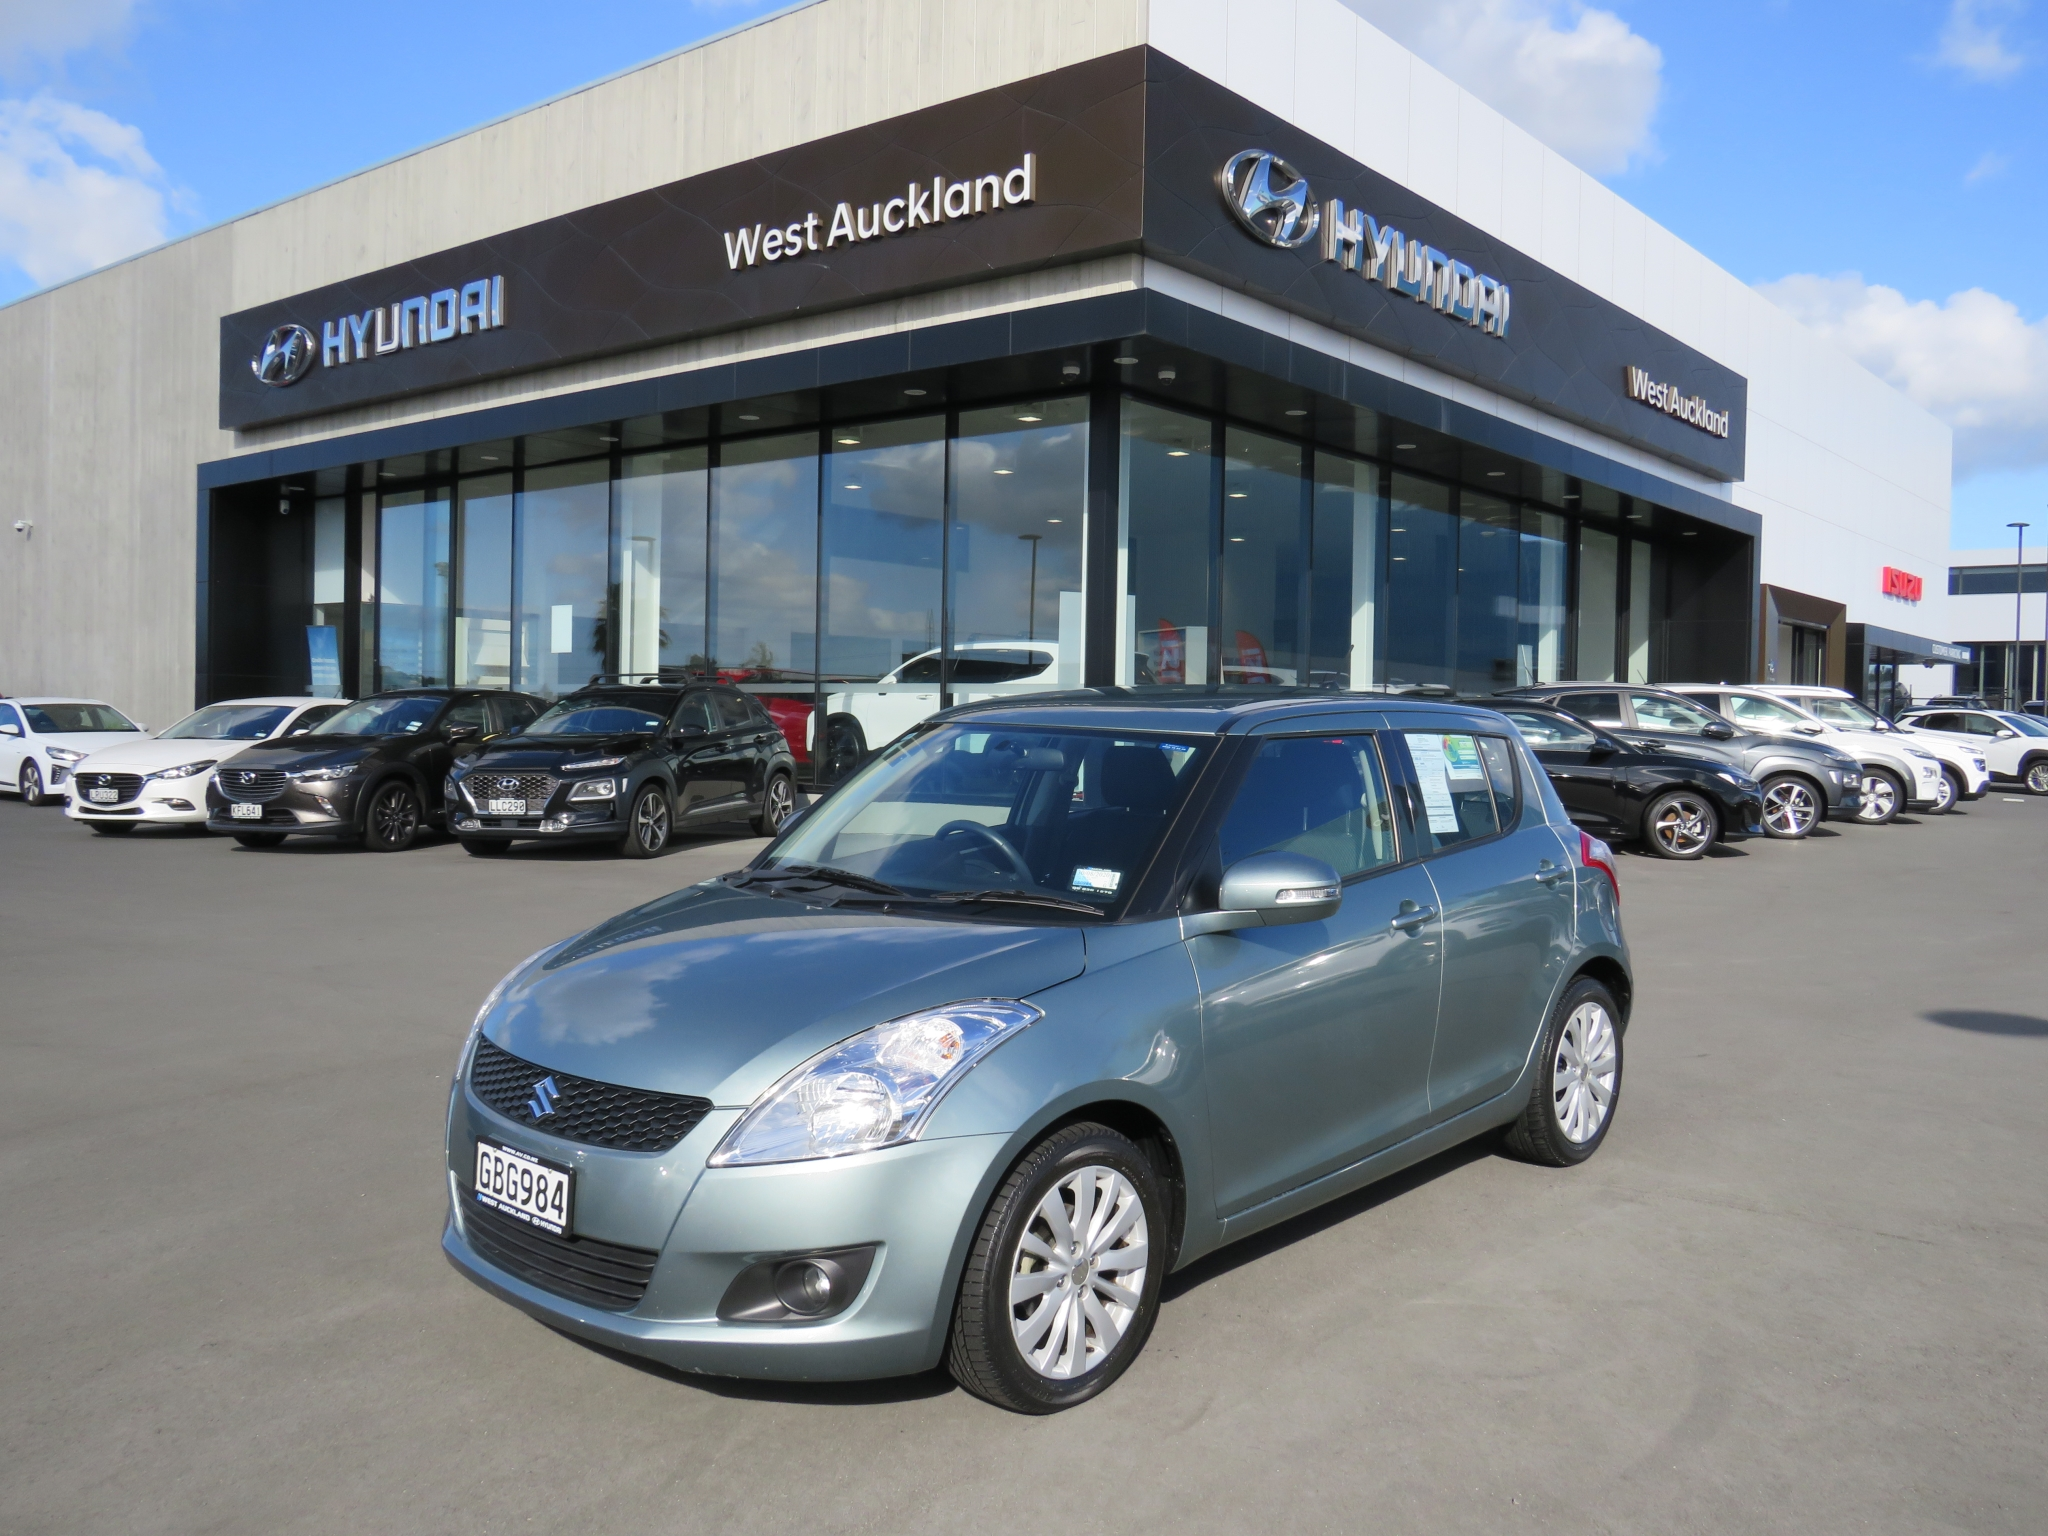 Used Hyundai 2011 Swift 1 4 Ltd Auto